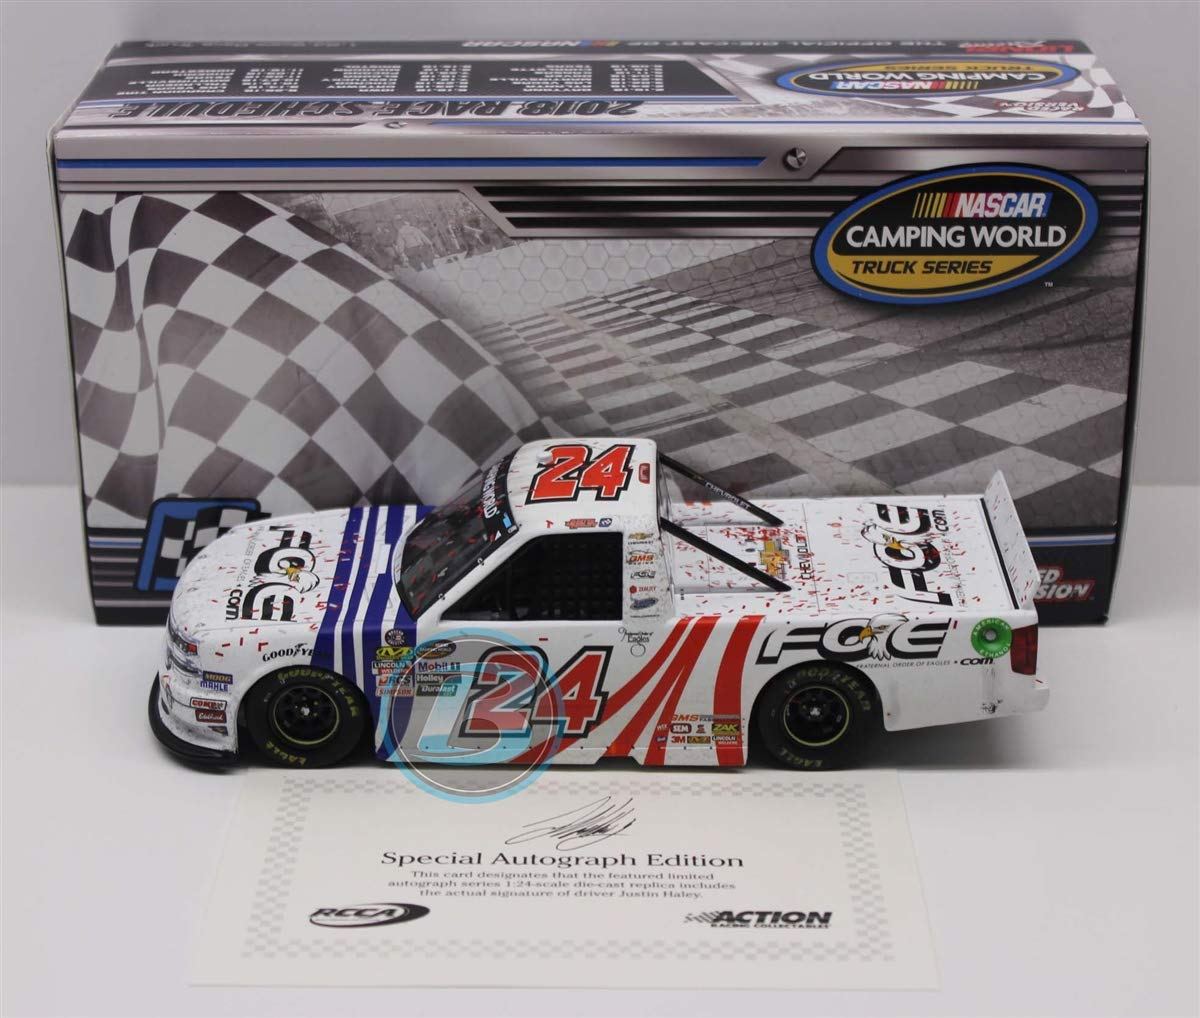 Lionel Racing Justin Haley Autographed 2018 Chevrolet Fraternal Order of Eagles/St. Louis Win 1:24